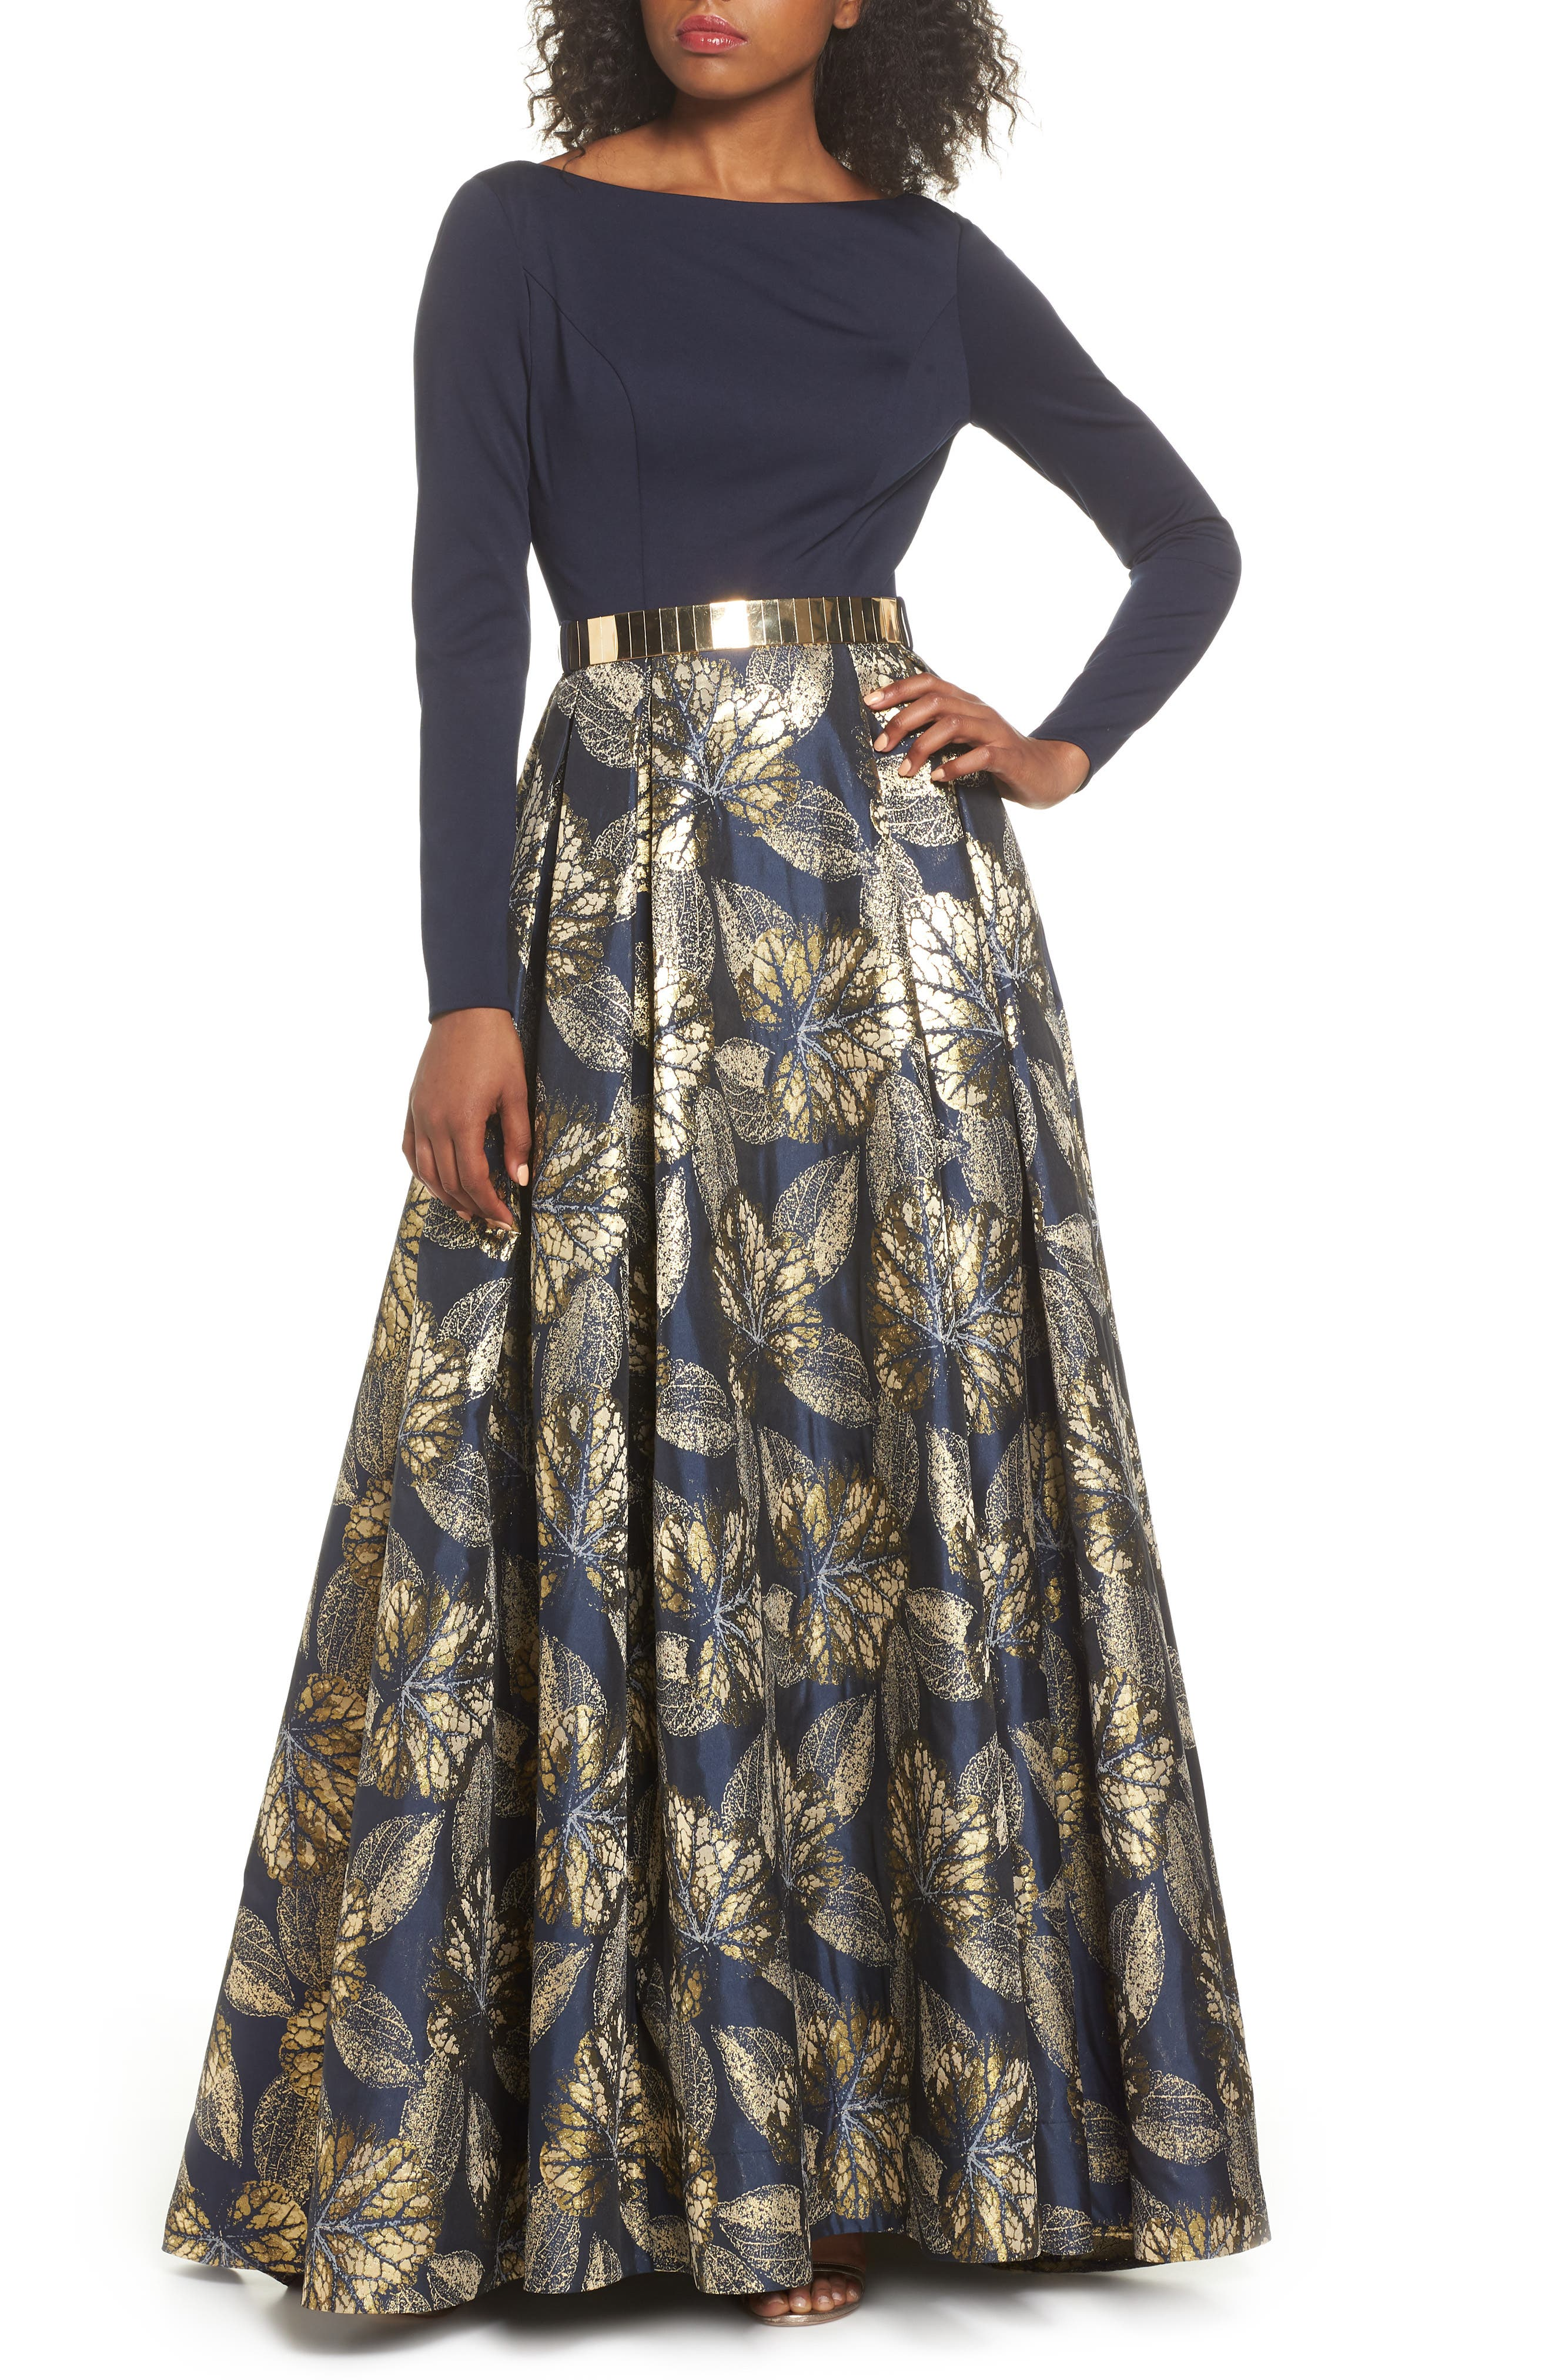 1950s Formal Dresses & Evening Gowns to Buy Womens MAC Duggal Long Sleeve Metallic Waist Print Gown $458.00 AT vintagedancer.com